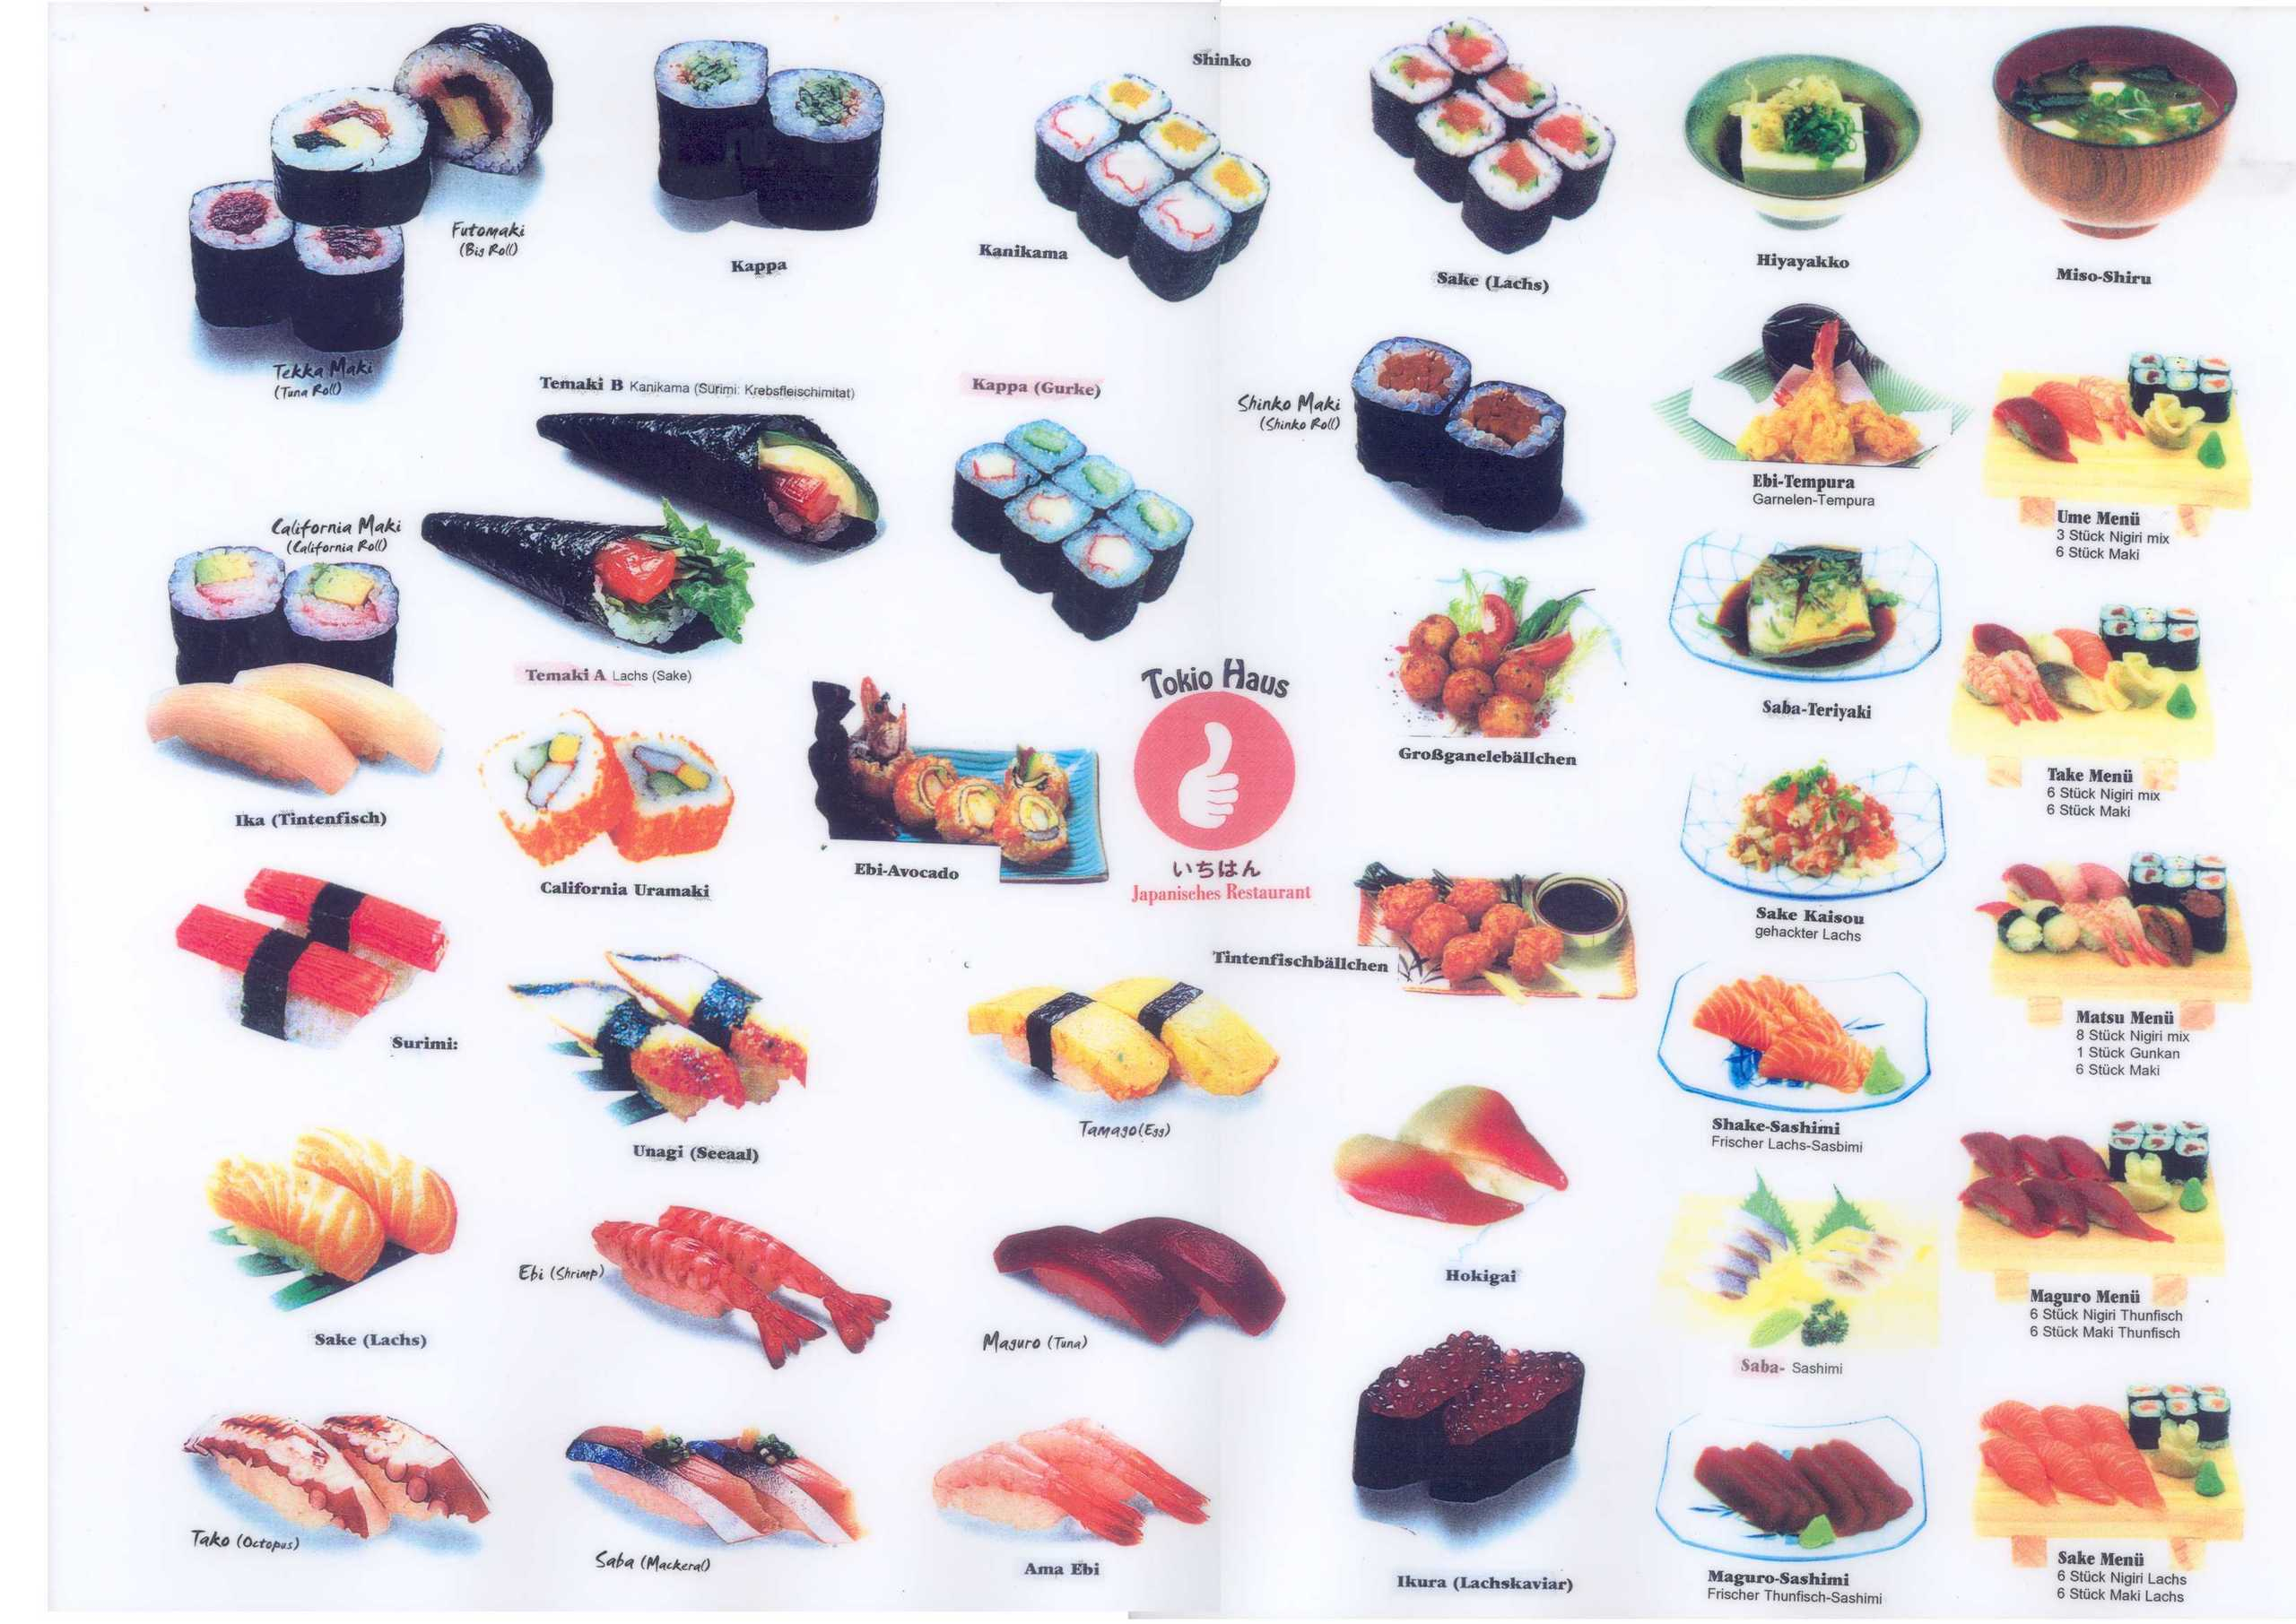 Sushi Rolls Pictures And Names http://www.fanpop.com/clubs/sushi/images/1493155/title/sushi-photo